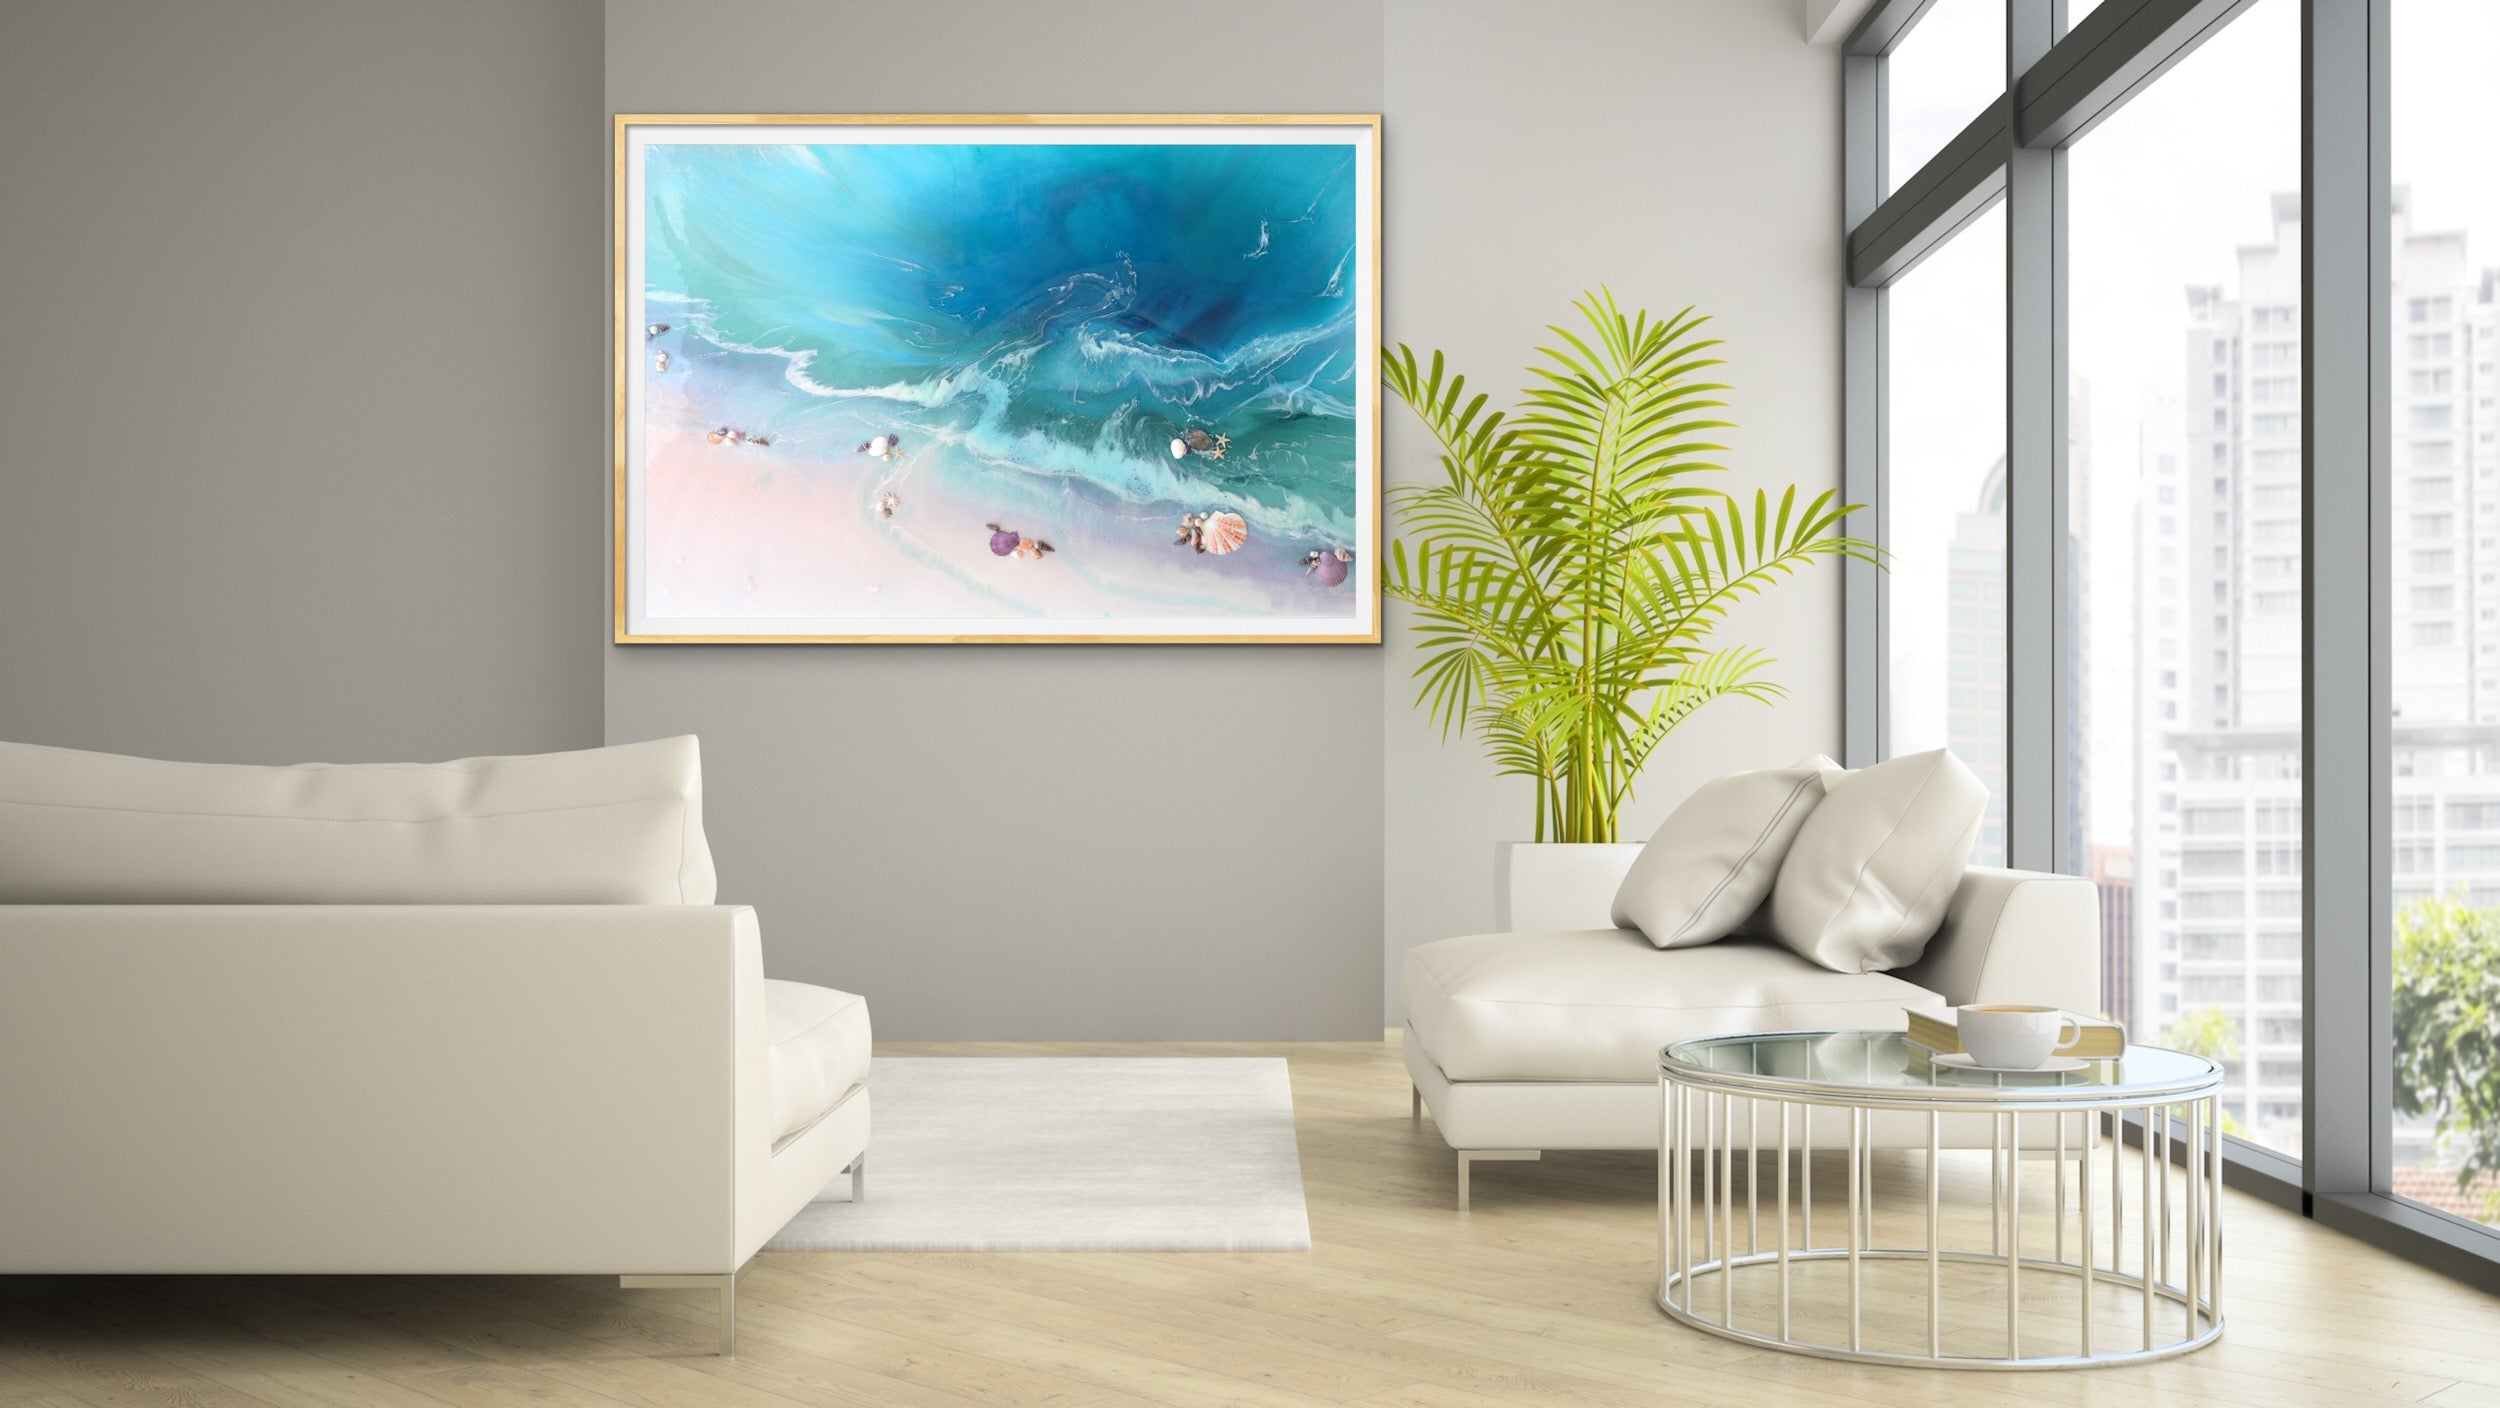 Abstract Seascape. Bright Teal. Bounty Dream. Art Print. Antuanelle 2 Dream Ocean Beach Wall. Limited Edition Print